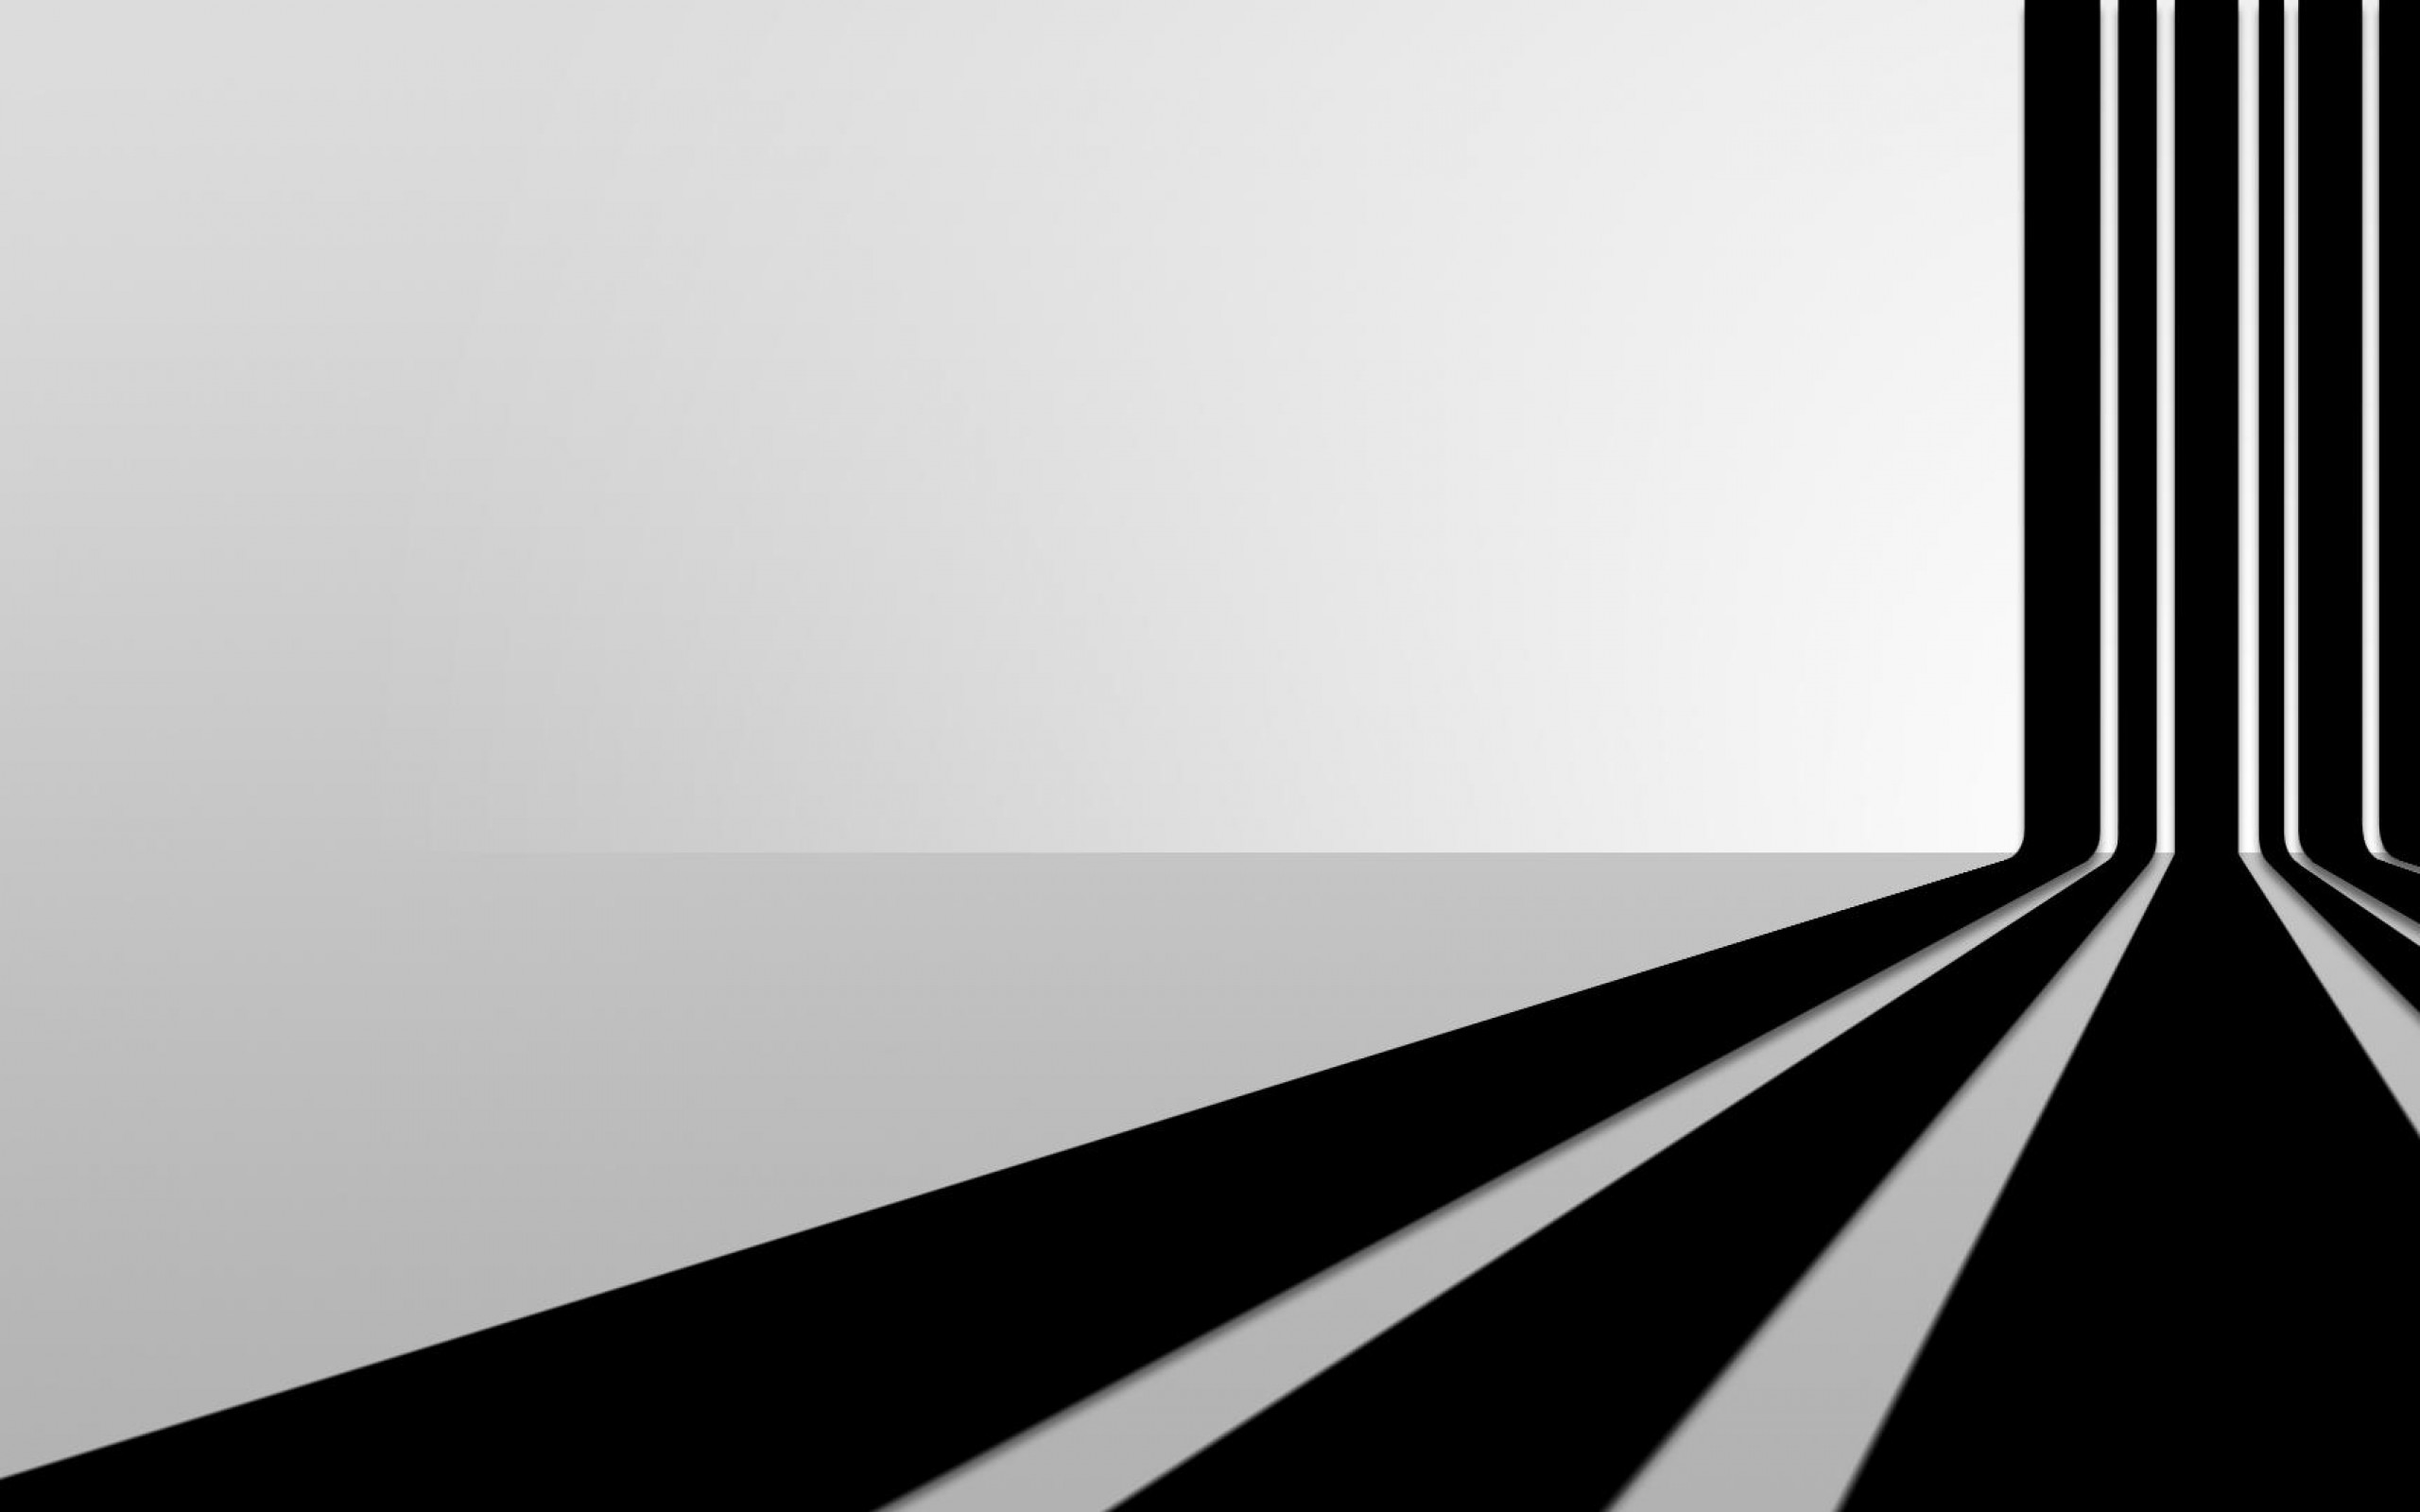 Amazing Black And White Wallpapers 27 Free Hd Wallpaper